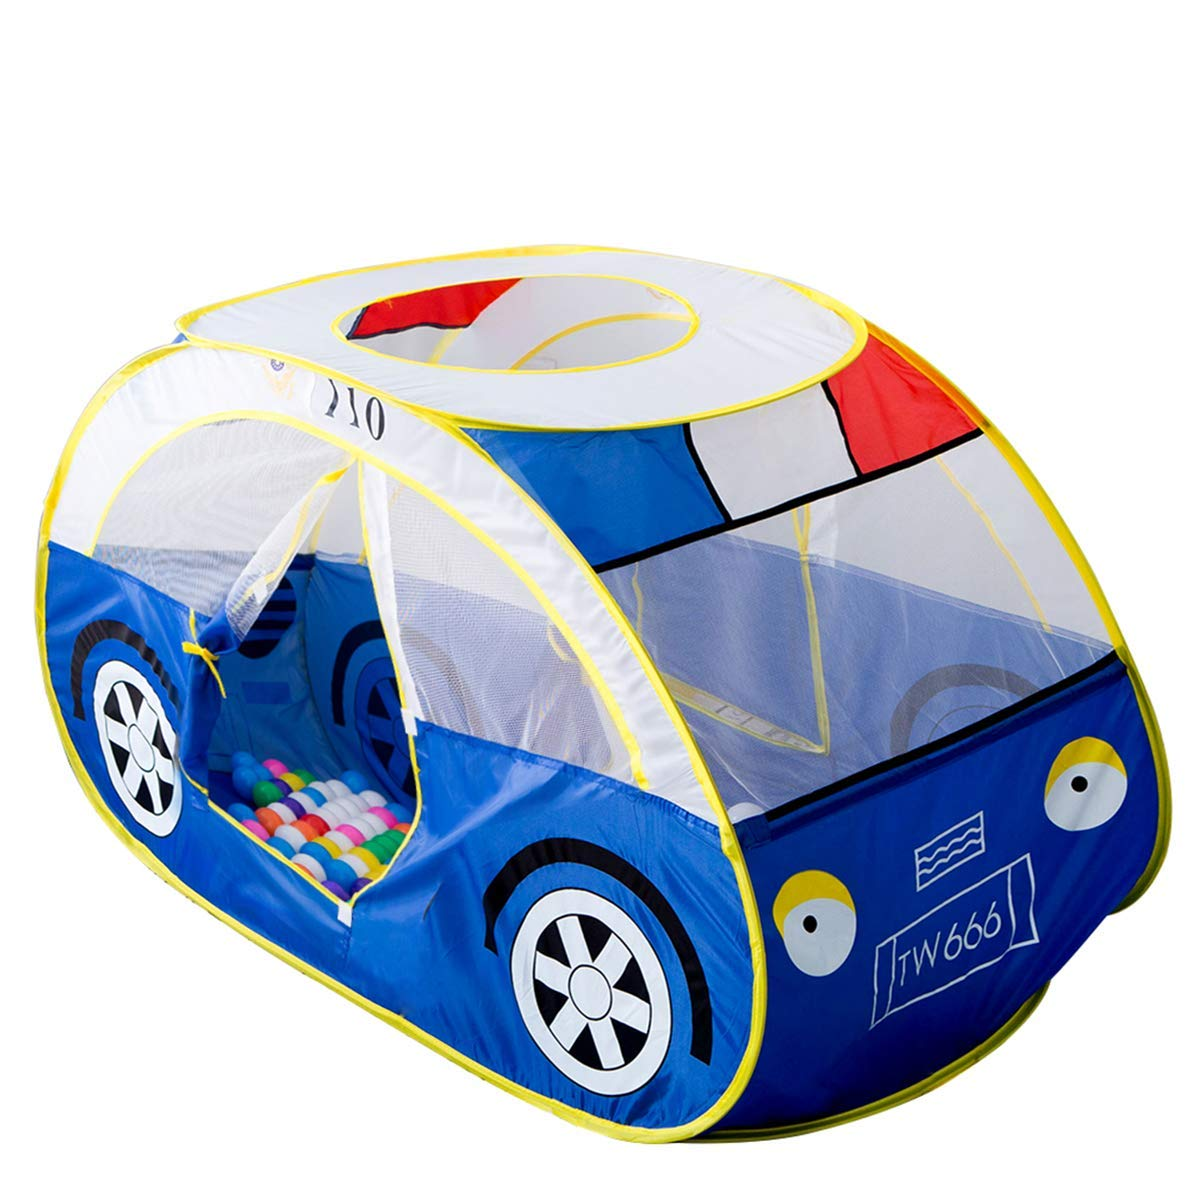 Car Playhouse Gift